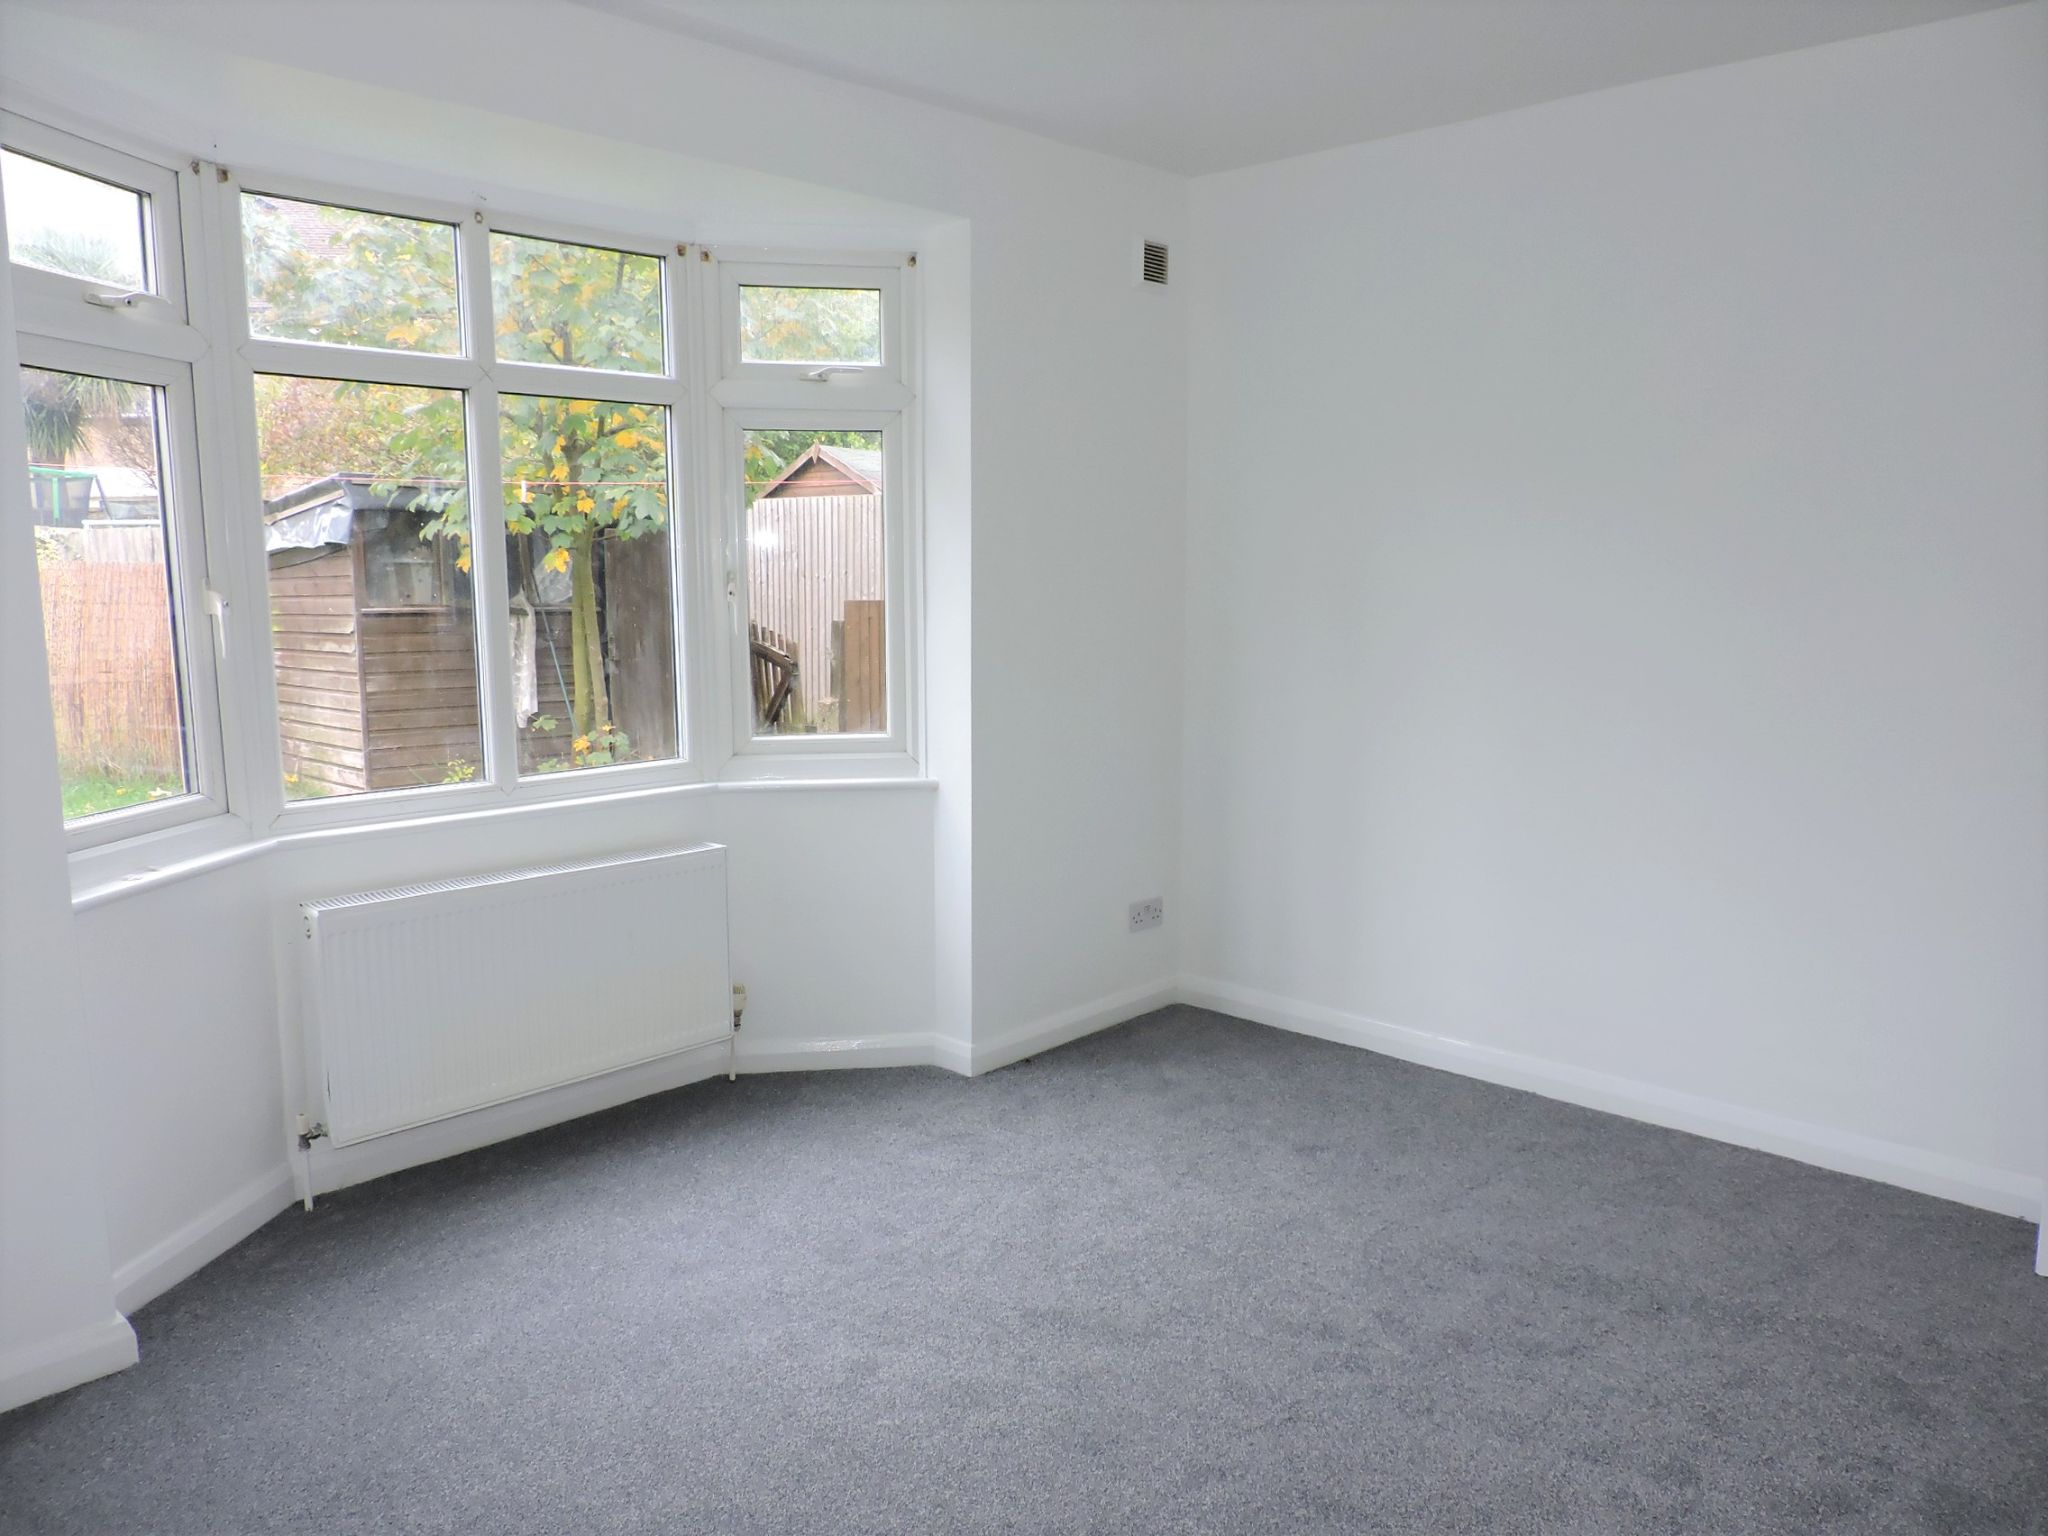 2 bedroom ground floor maisonette flat/apartment Let Agreed in New Malden - Photograph 7